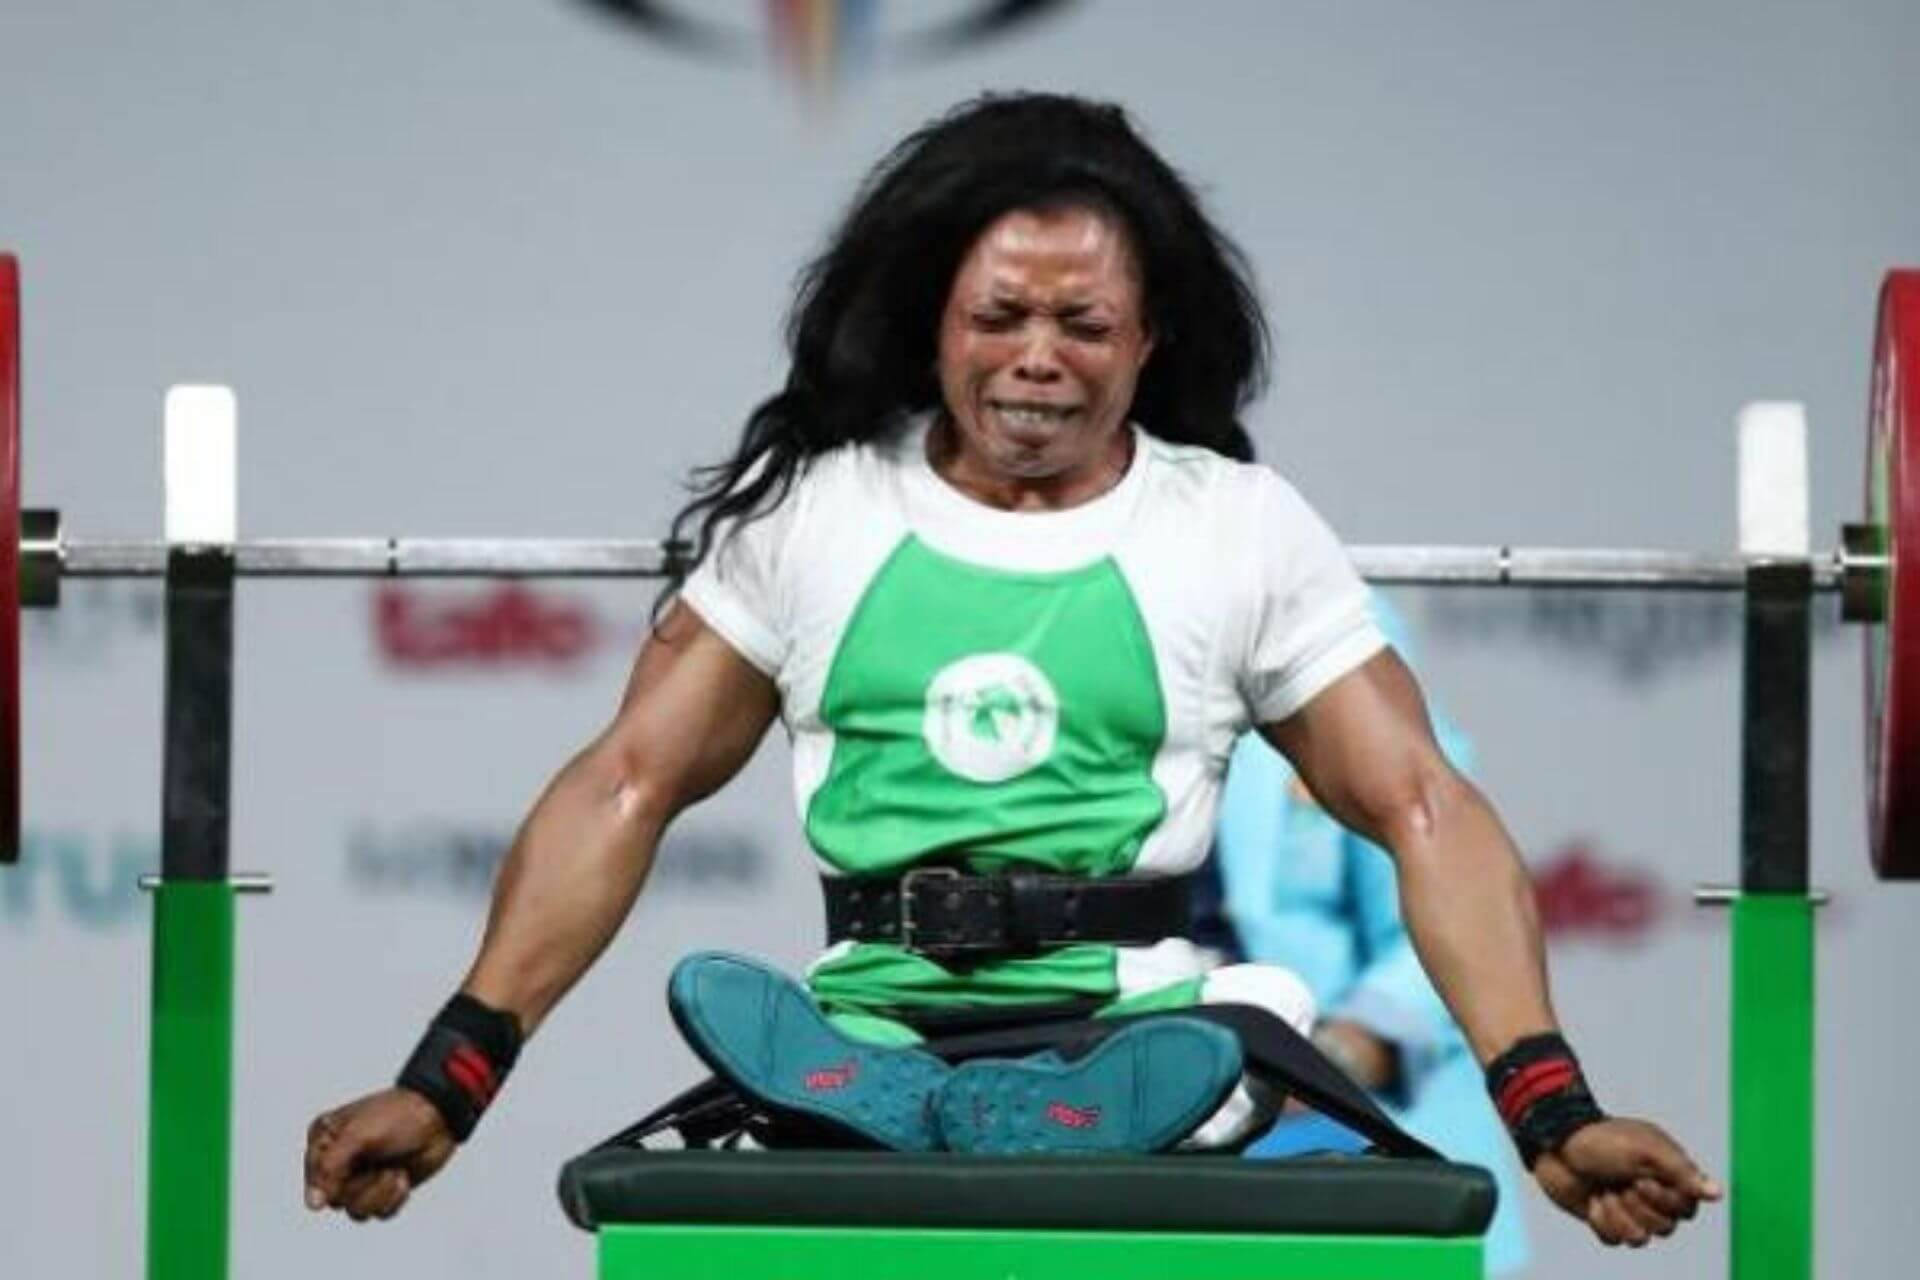 Nigerian Paralympic gold medalist, Esther Oyema handed 4-year ban for doping